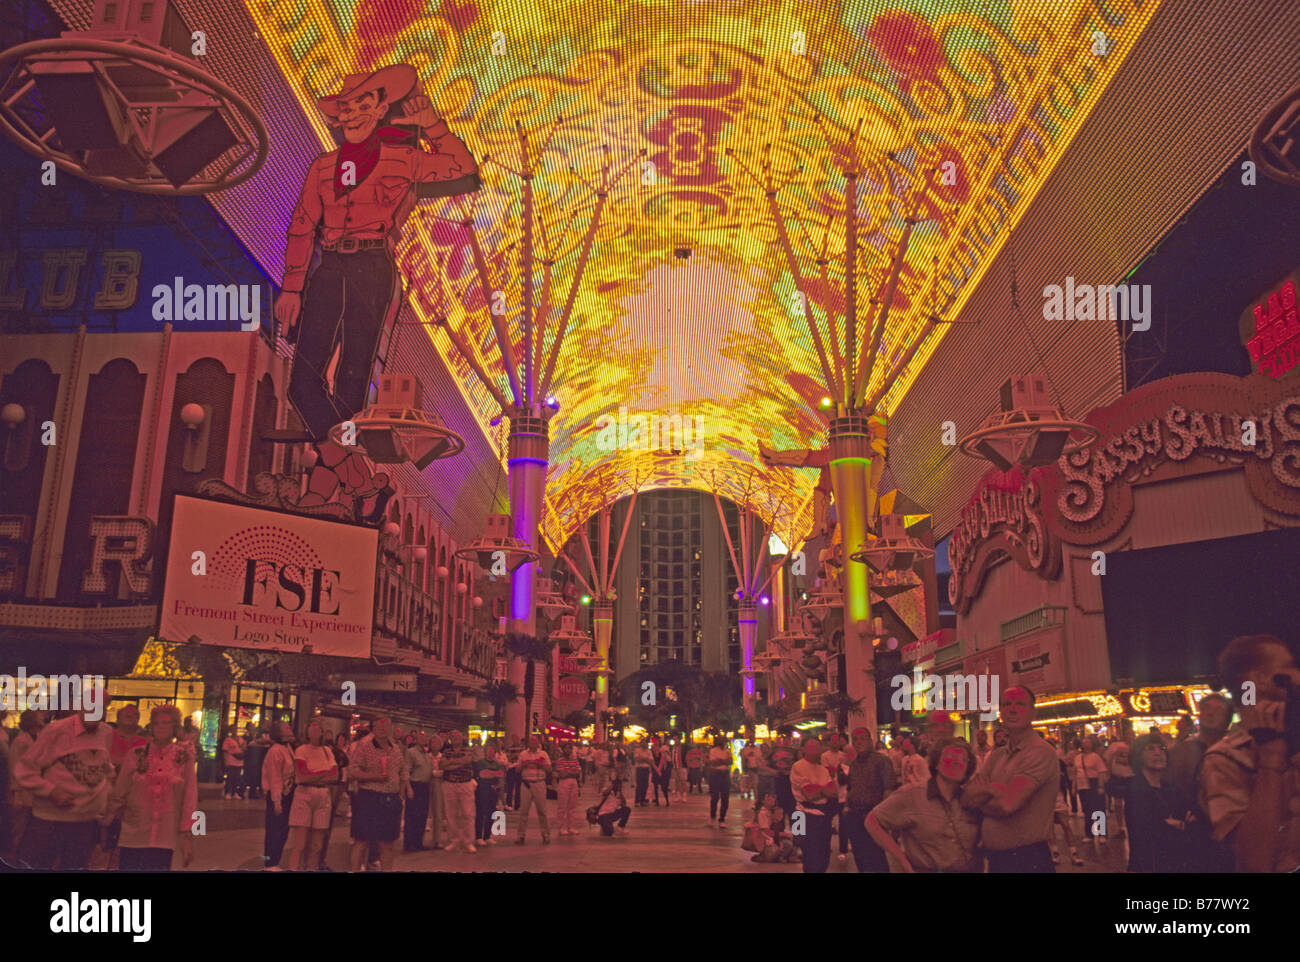 People watching ceiling light show fremont street experience las people watching ceiling light show fremont street experience las vegas nevada aloadofball Images